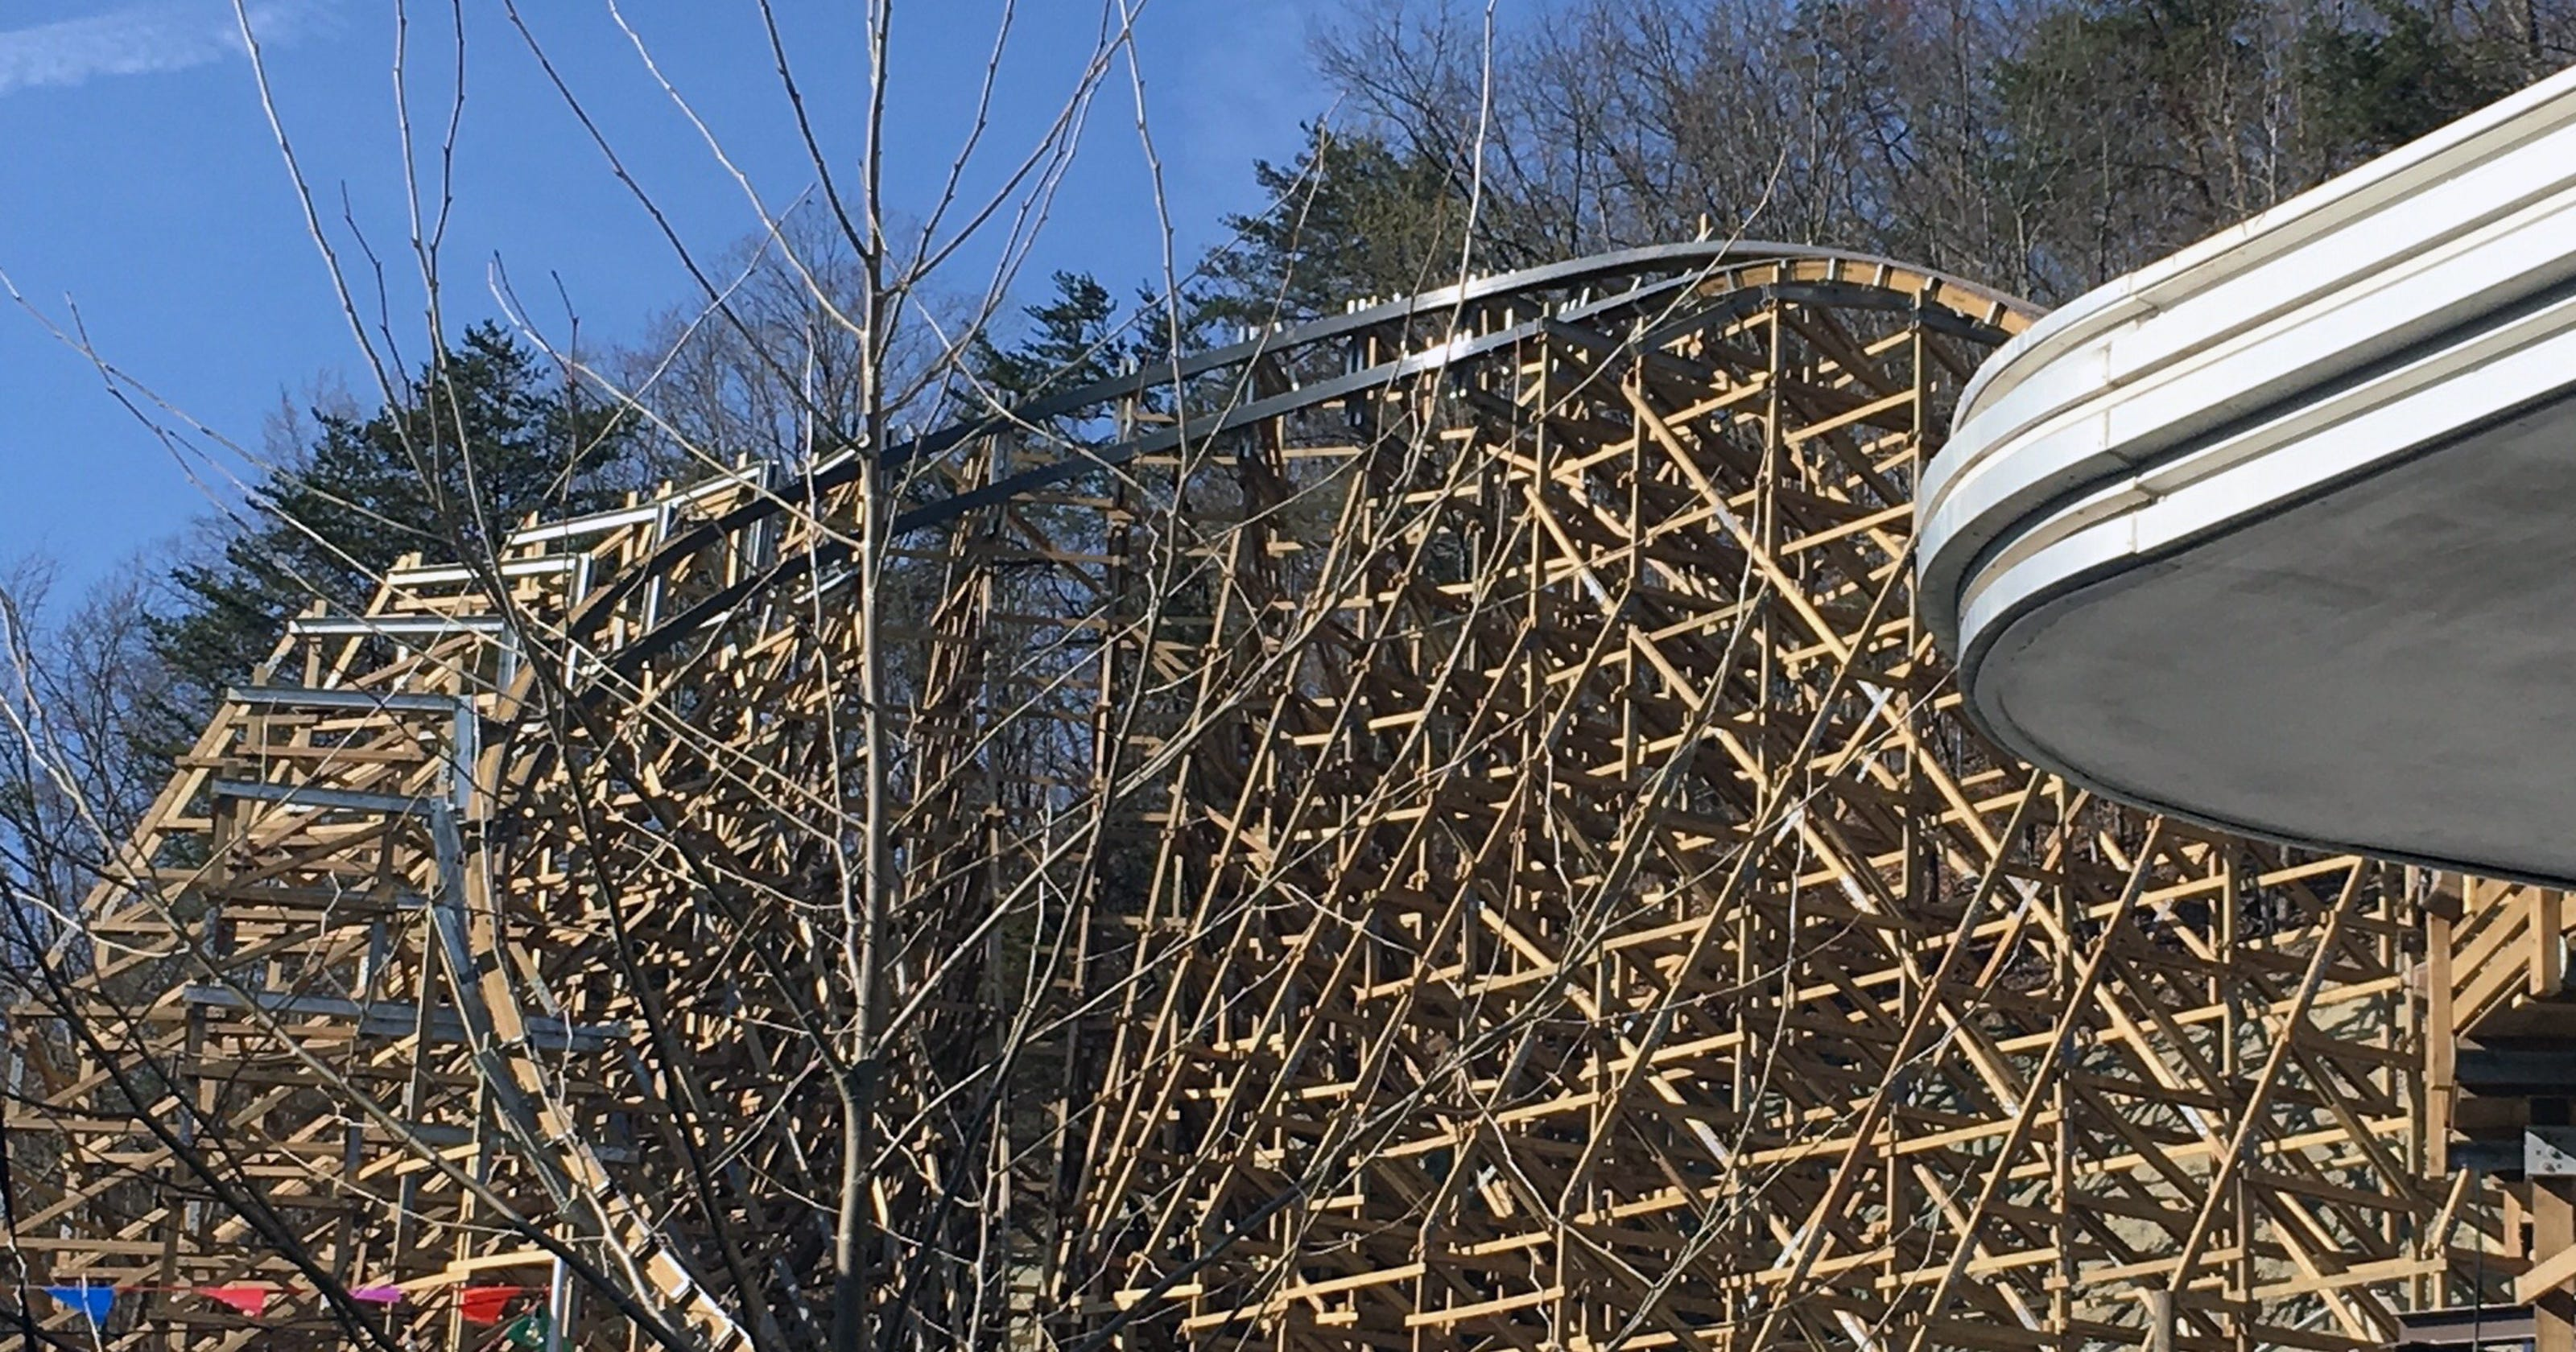 Dollywoods Lightning Rod Brought To A Halt By Recall